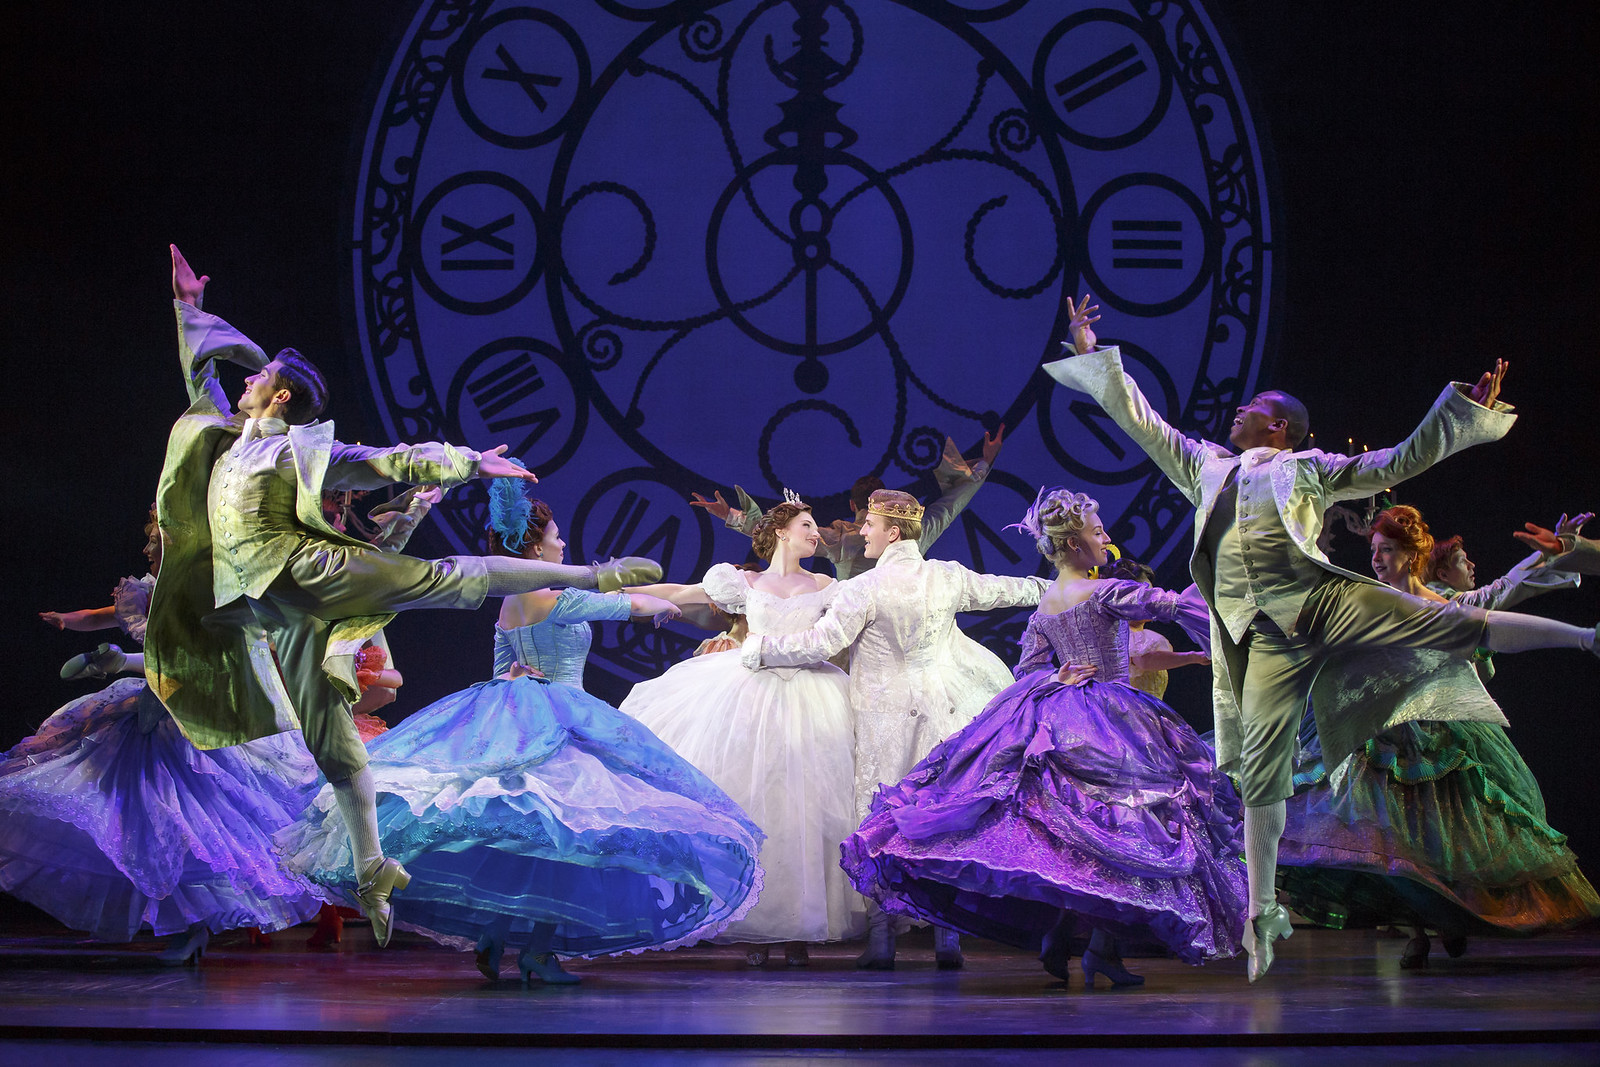 atyana Lubov and Louis Griffin (center) in Rodgers + Hammerstein's Cinderella. Photo: © Carol Rosegg // Broadway In Detroit: Rodgers + Hammerstein's Cinderella At The Fisher Theatre | via Wading in Big Shoes